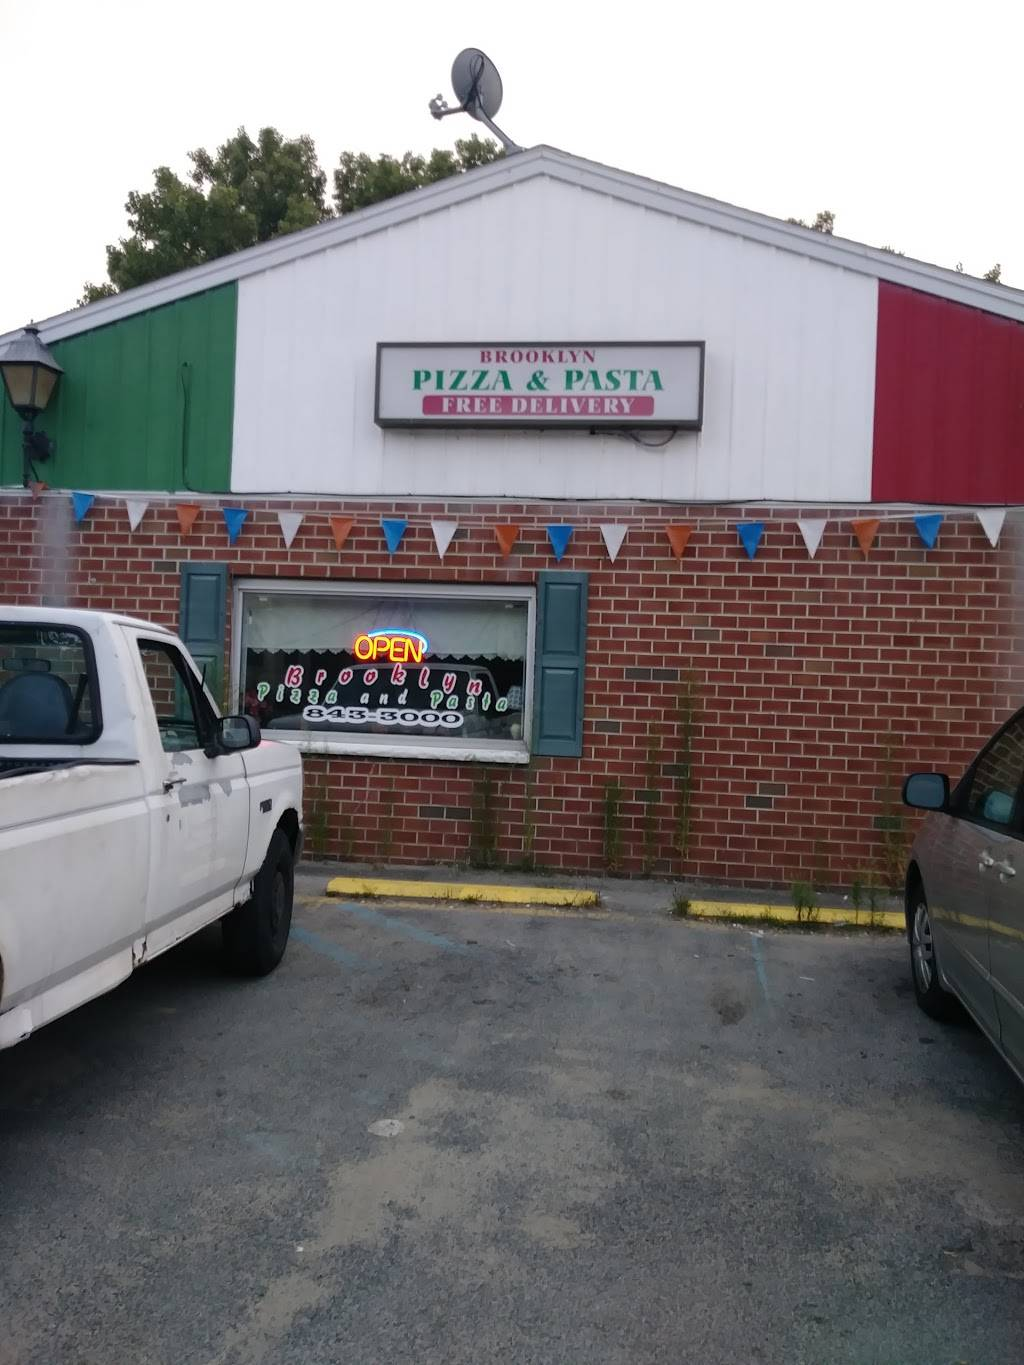 Brooklyn Pizza & Pasta | restaurant | 145 Lenox Ave, Oneida, NY 13421, USA | 5188433000 OR +1 518-843-3000